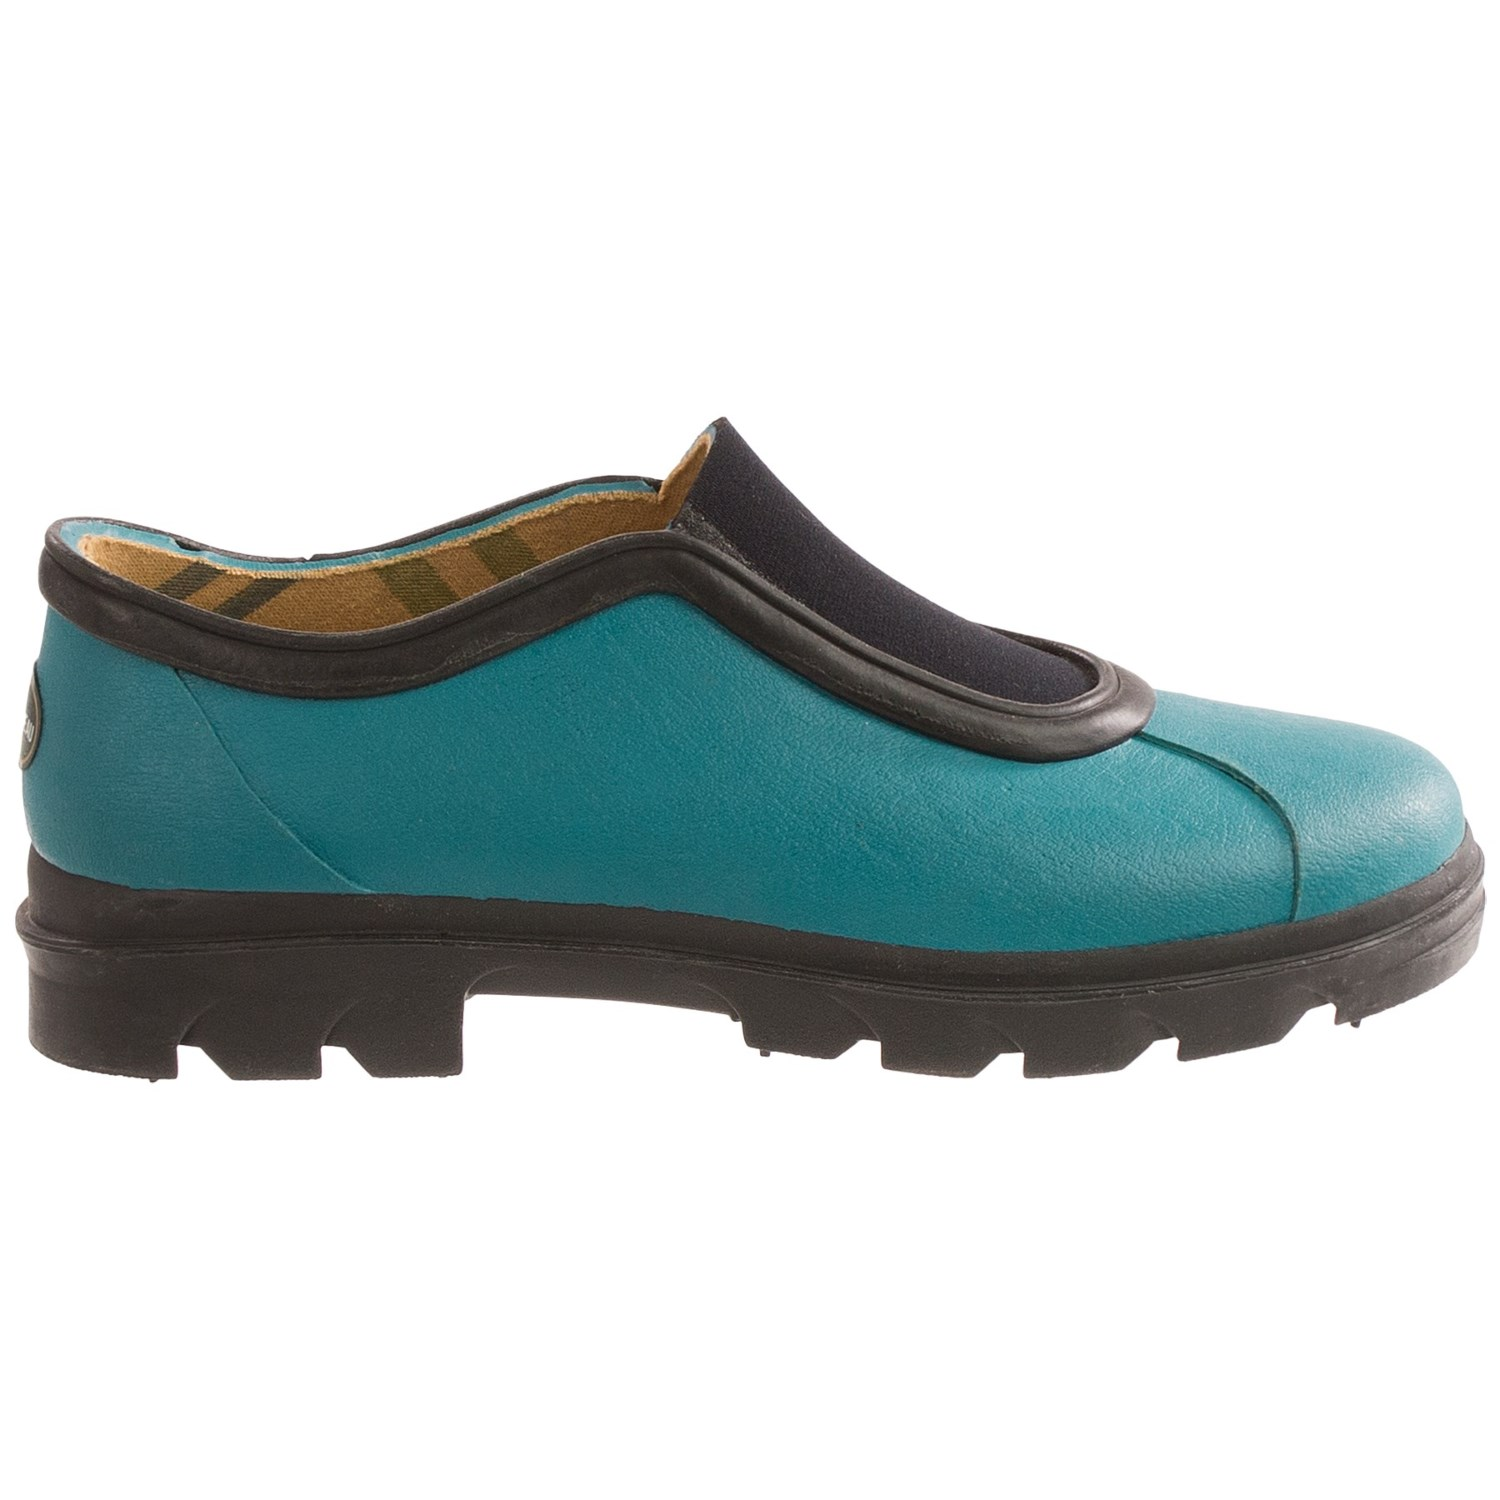 Online shopping rubber shoes philippines